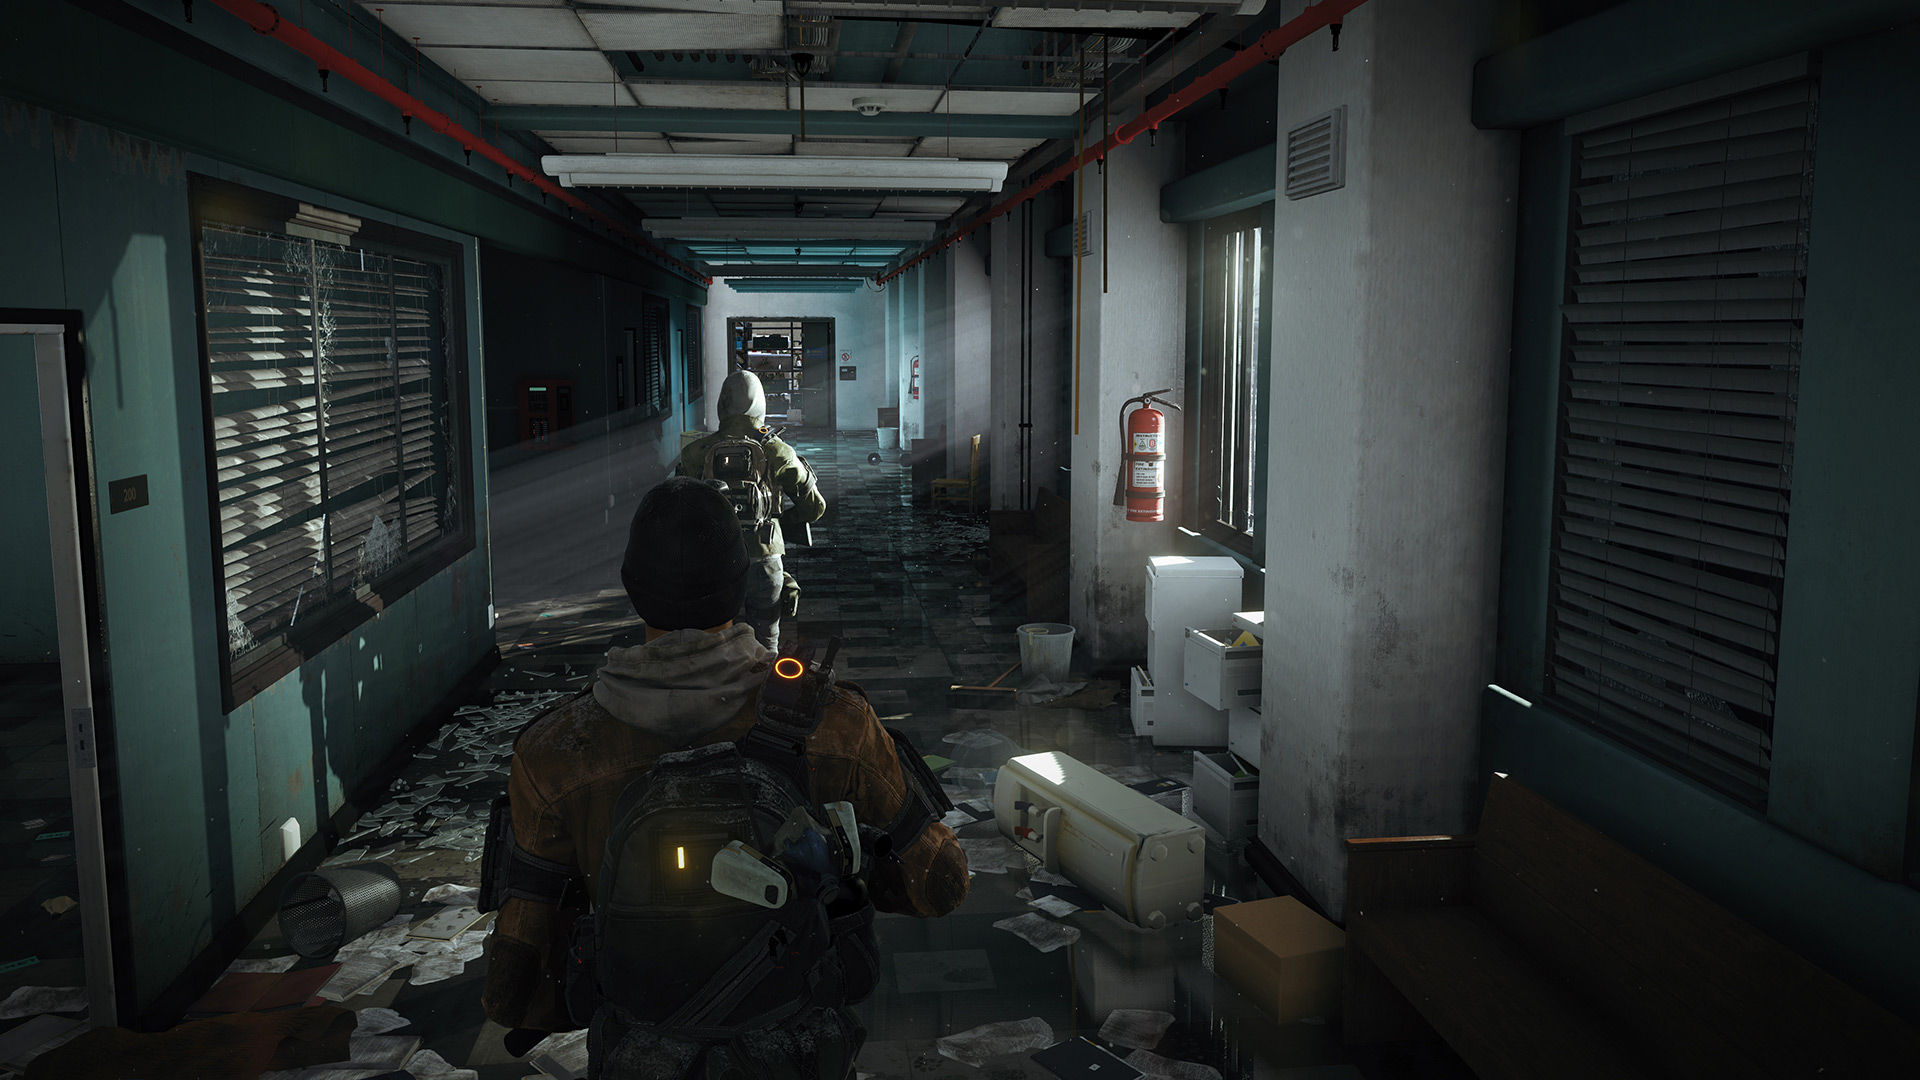 Ubisoft brings in another studio to help make Tom Clancy's The Division